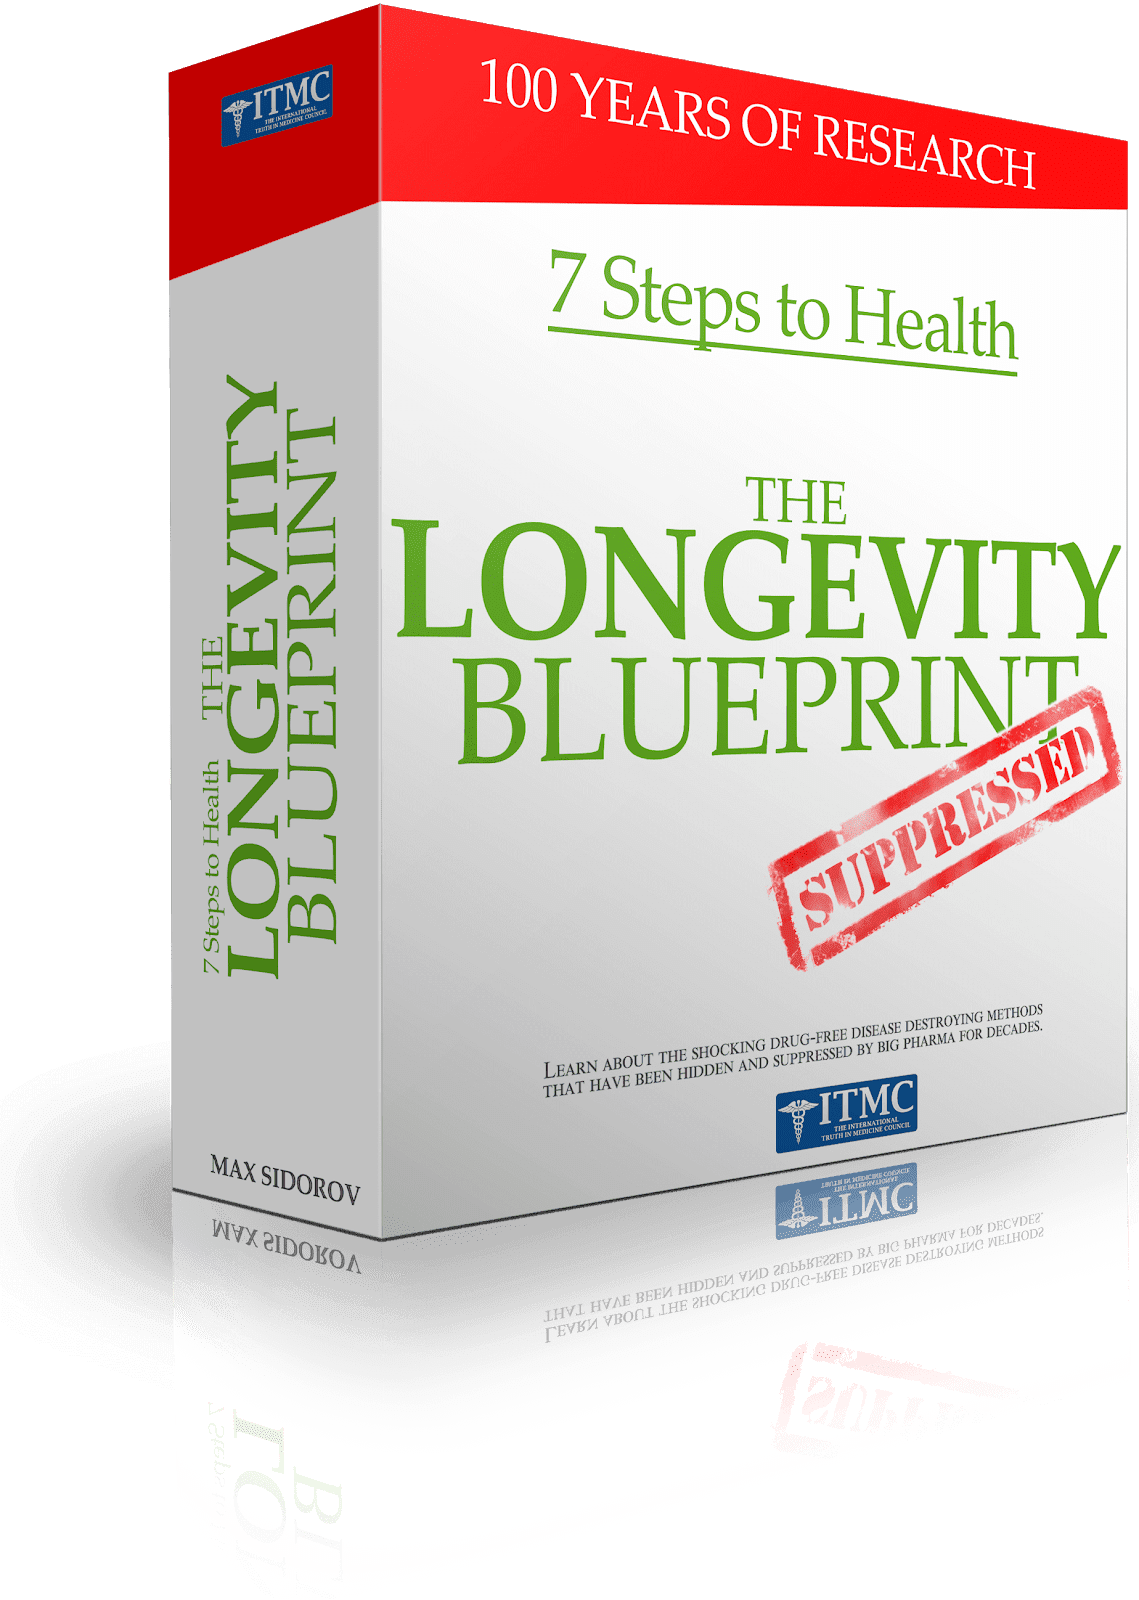 Longevity Blueprint. Staying Healthy Past 40. Click, if You Want ☺.